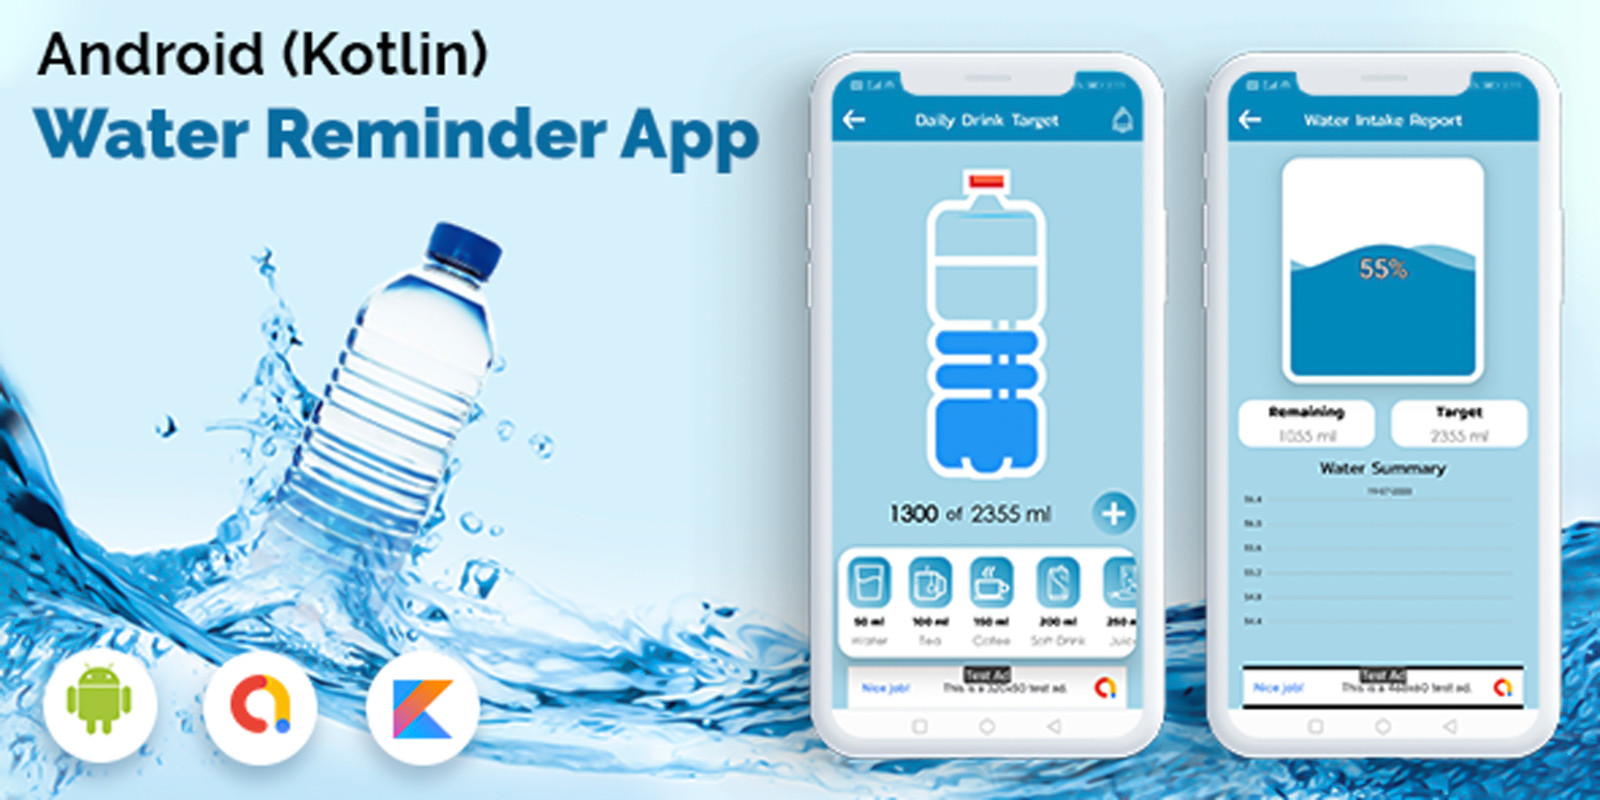 Android Kotlin Drink Water Reminder